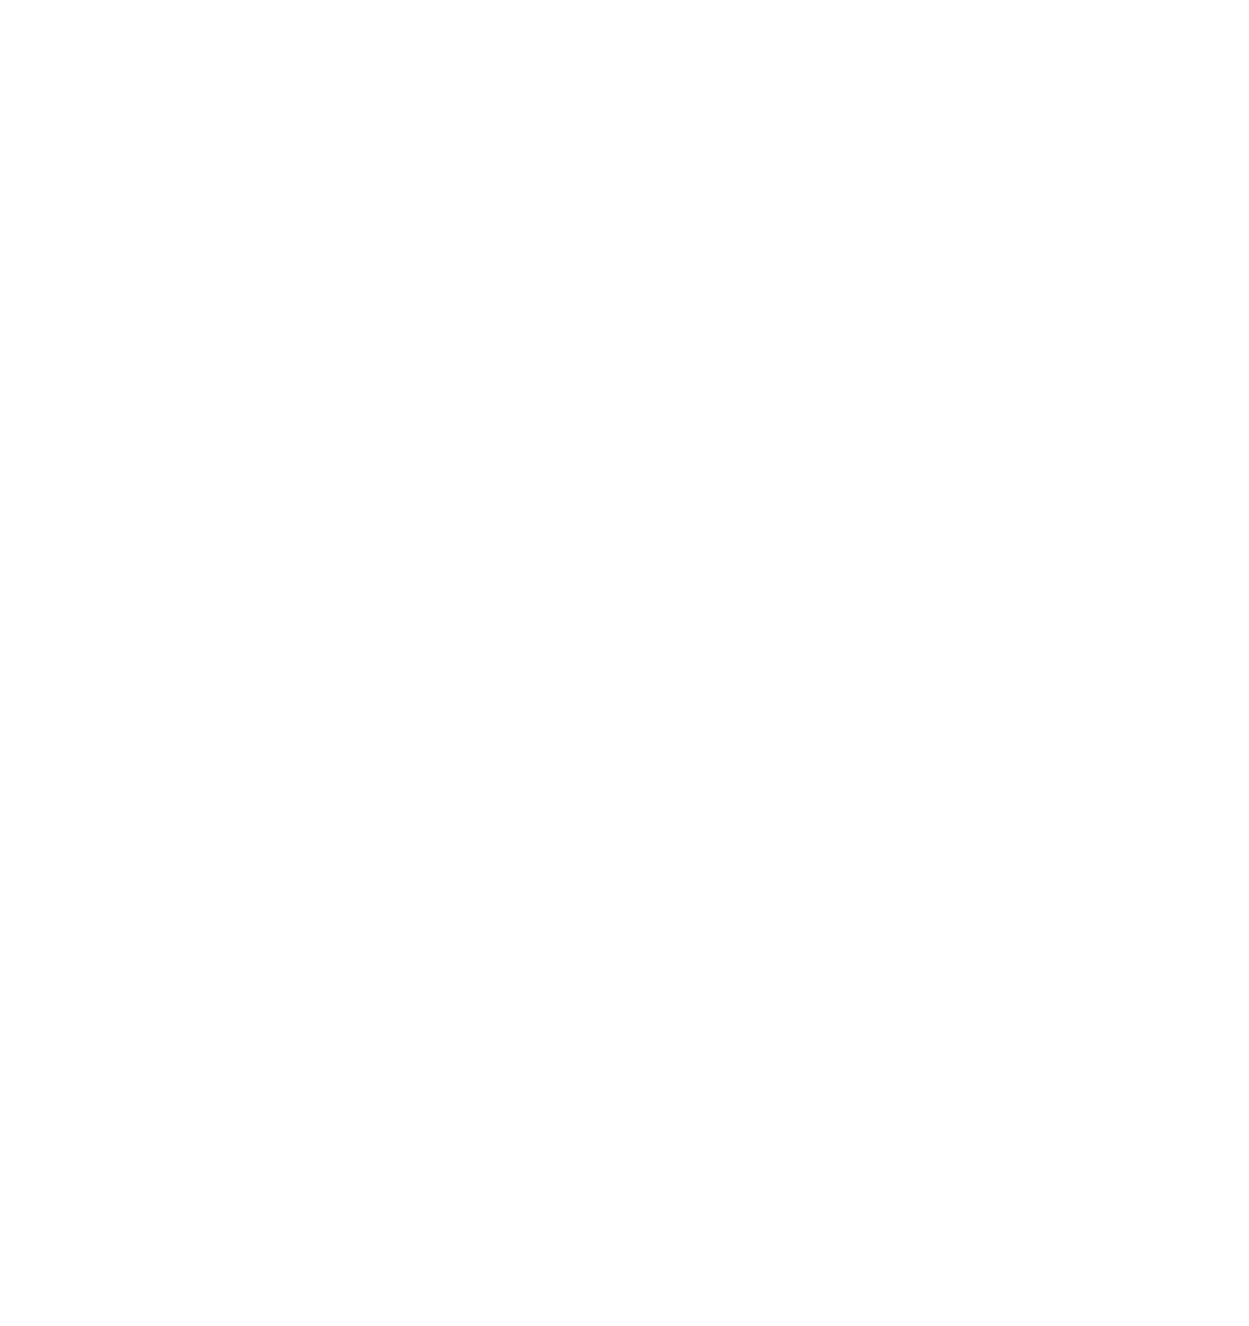 PreprostoMontessori logo